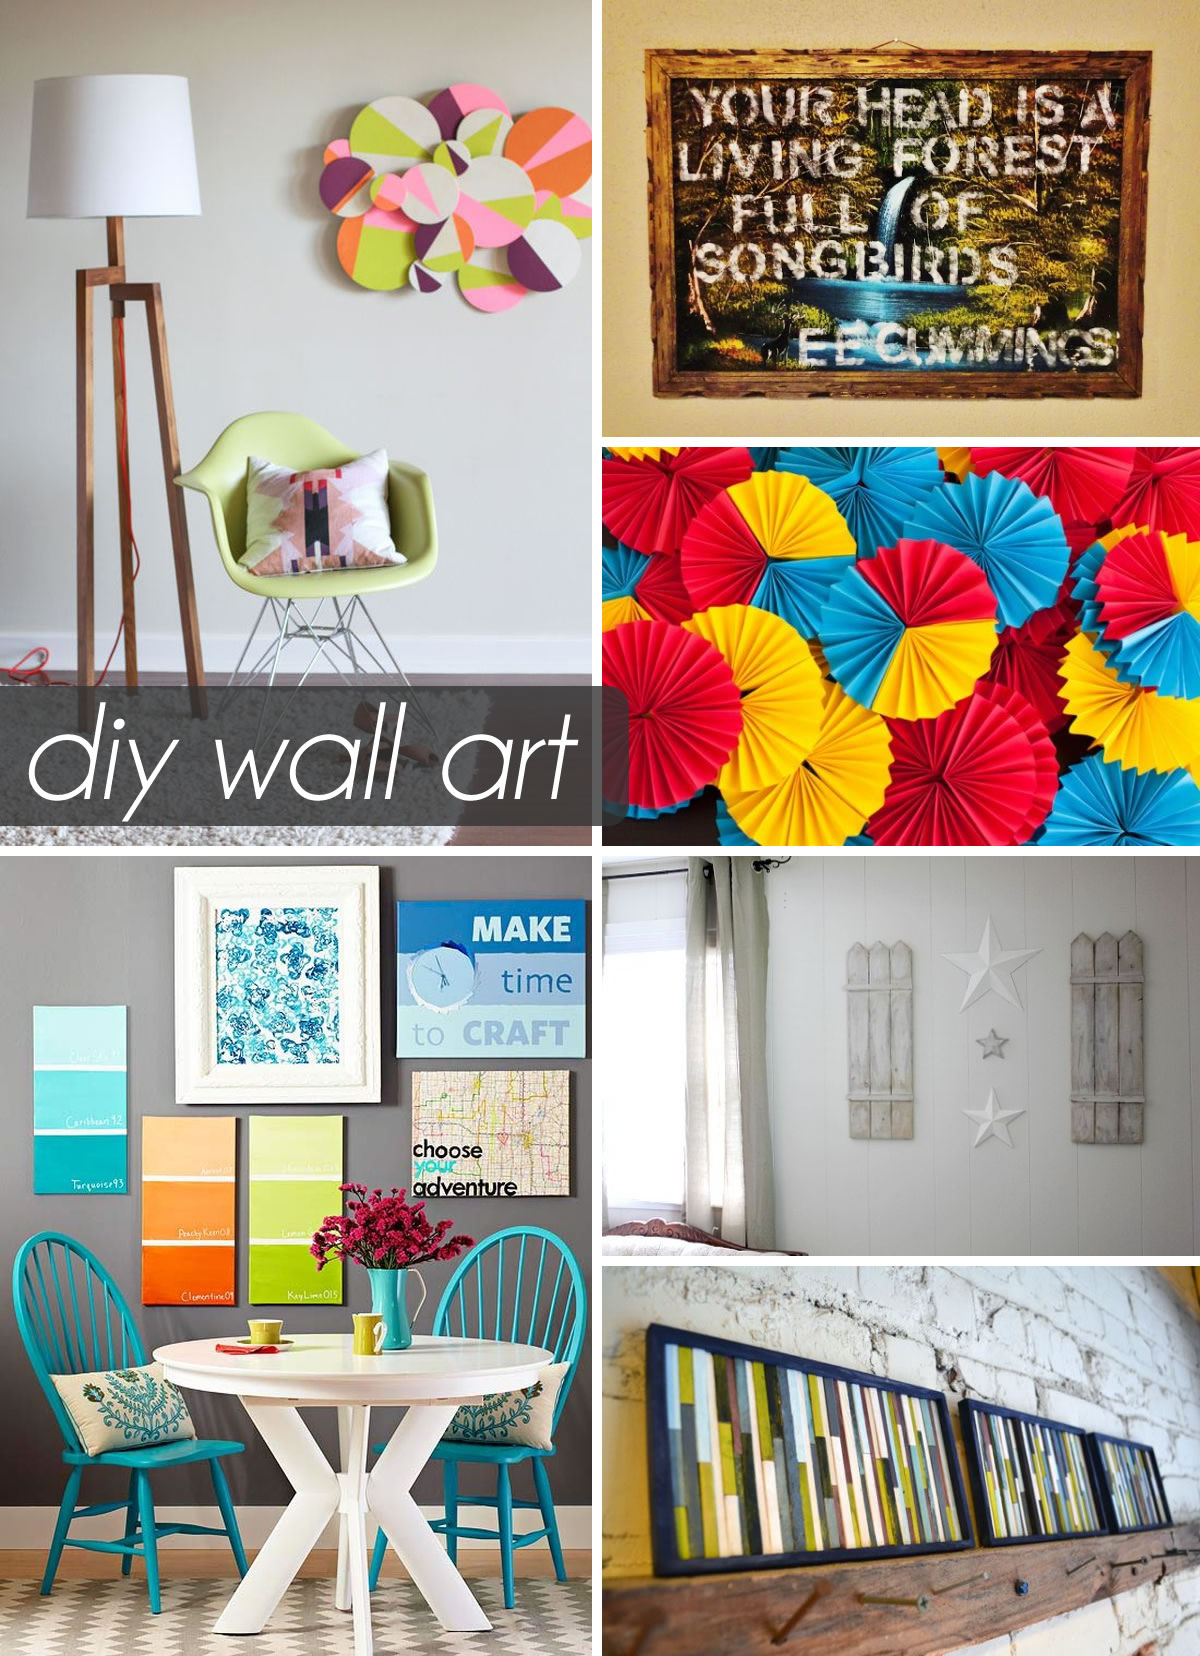 Ways To Decorate Your Walls ways to decorate bedroom walls adorable design bedroom wall decorating ideas with good wall decor for 50 Beautiful Diy Wall Art Ideas For Your Home